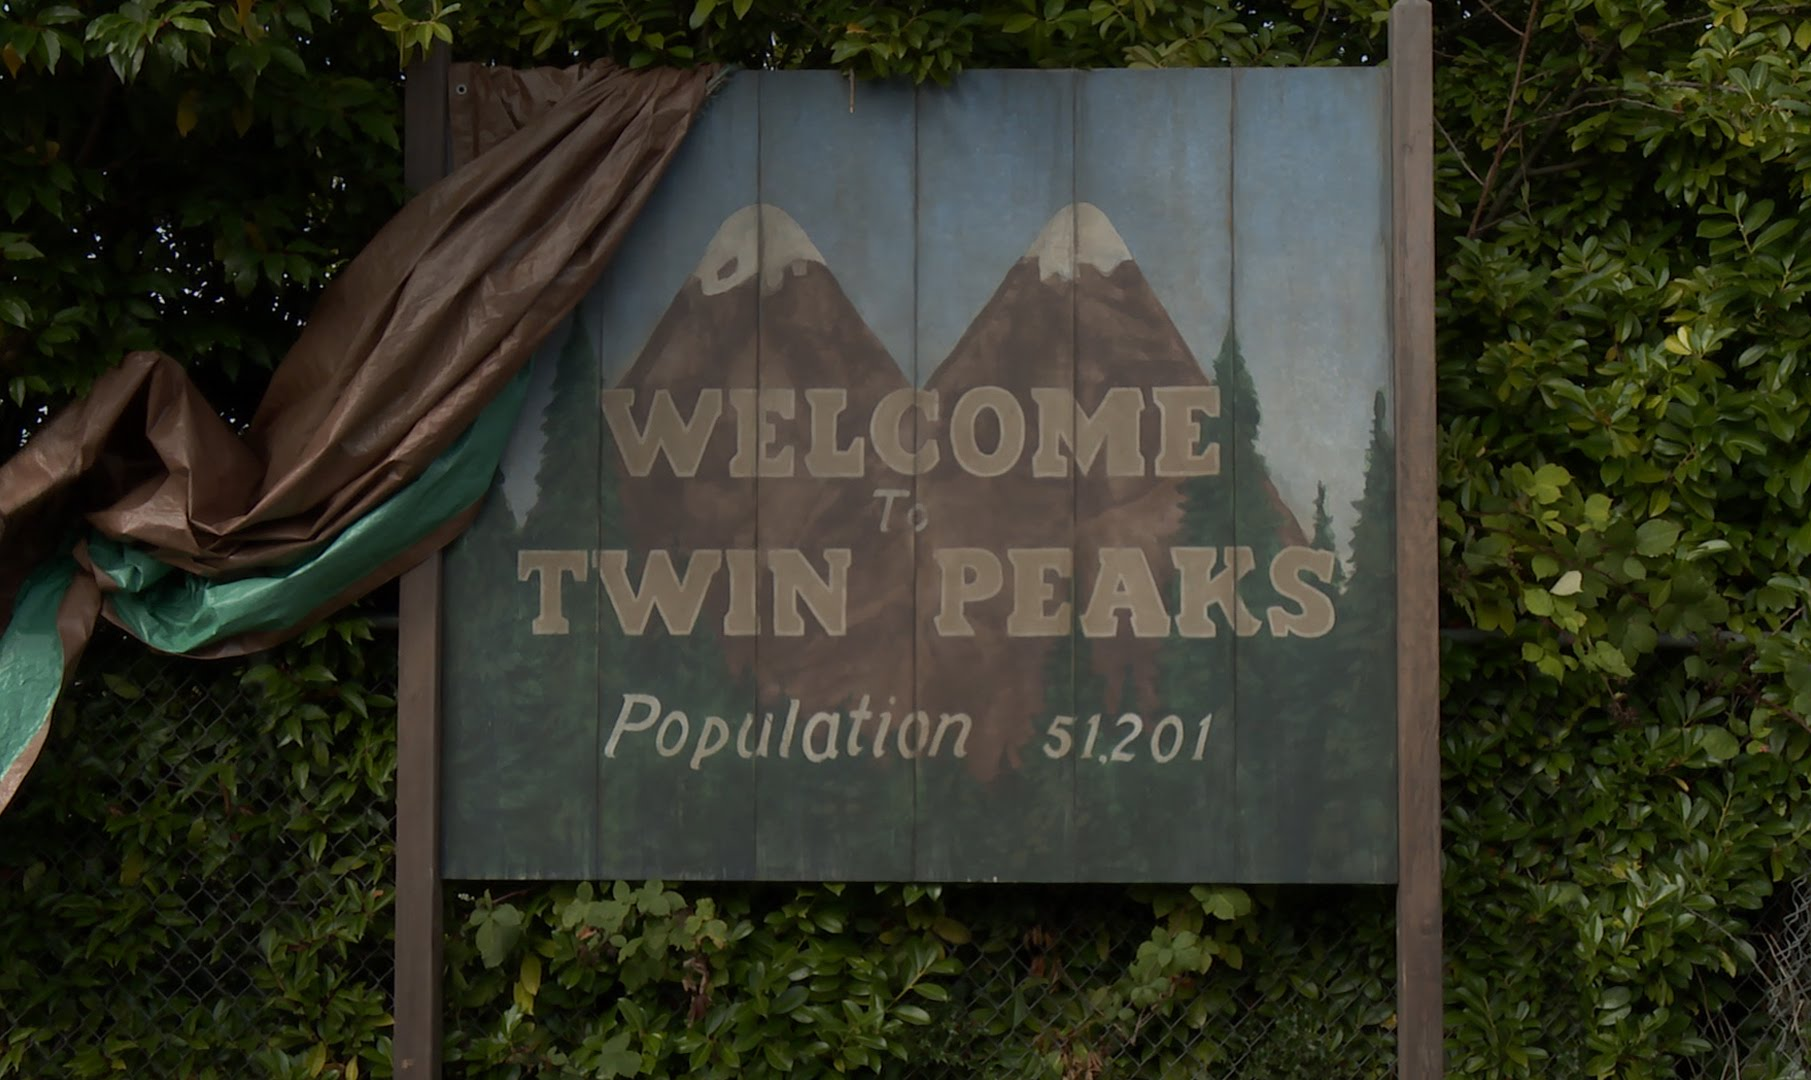 Twin Peaks rivela tutto il cast, ed è follia